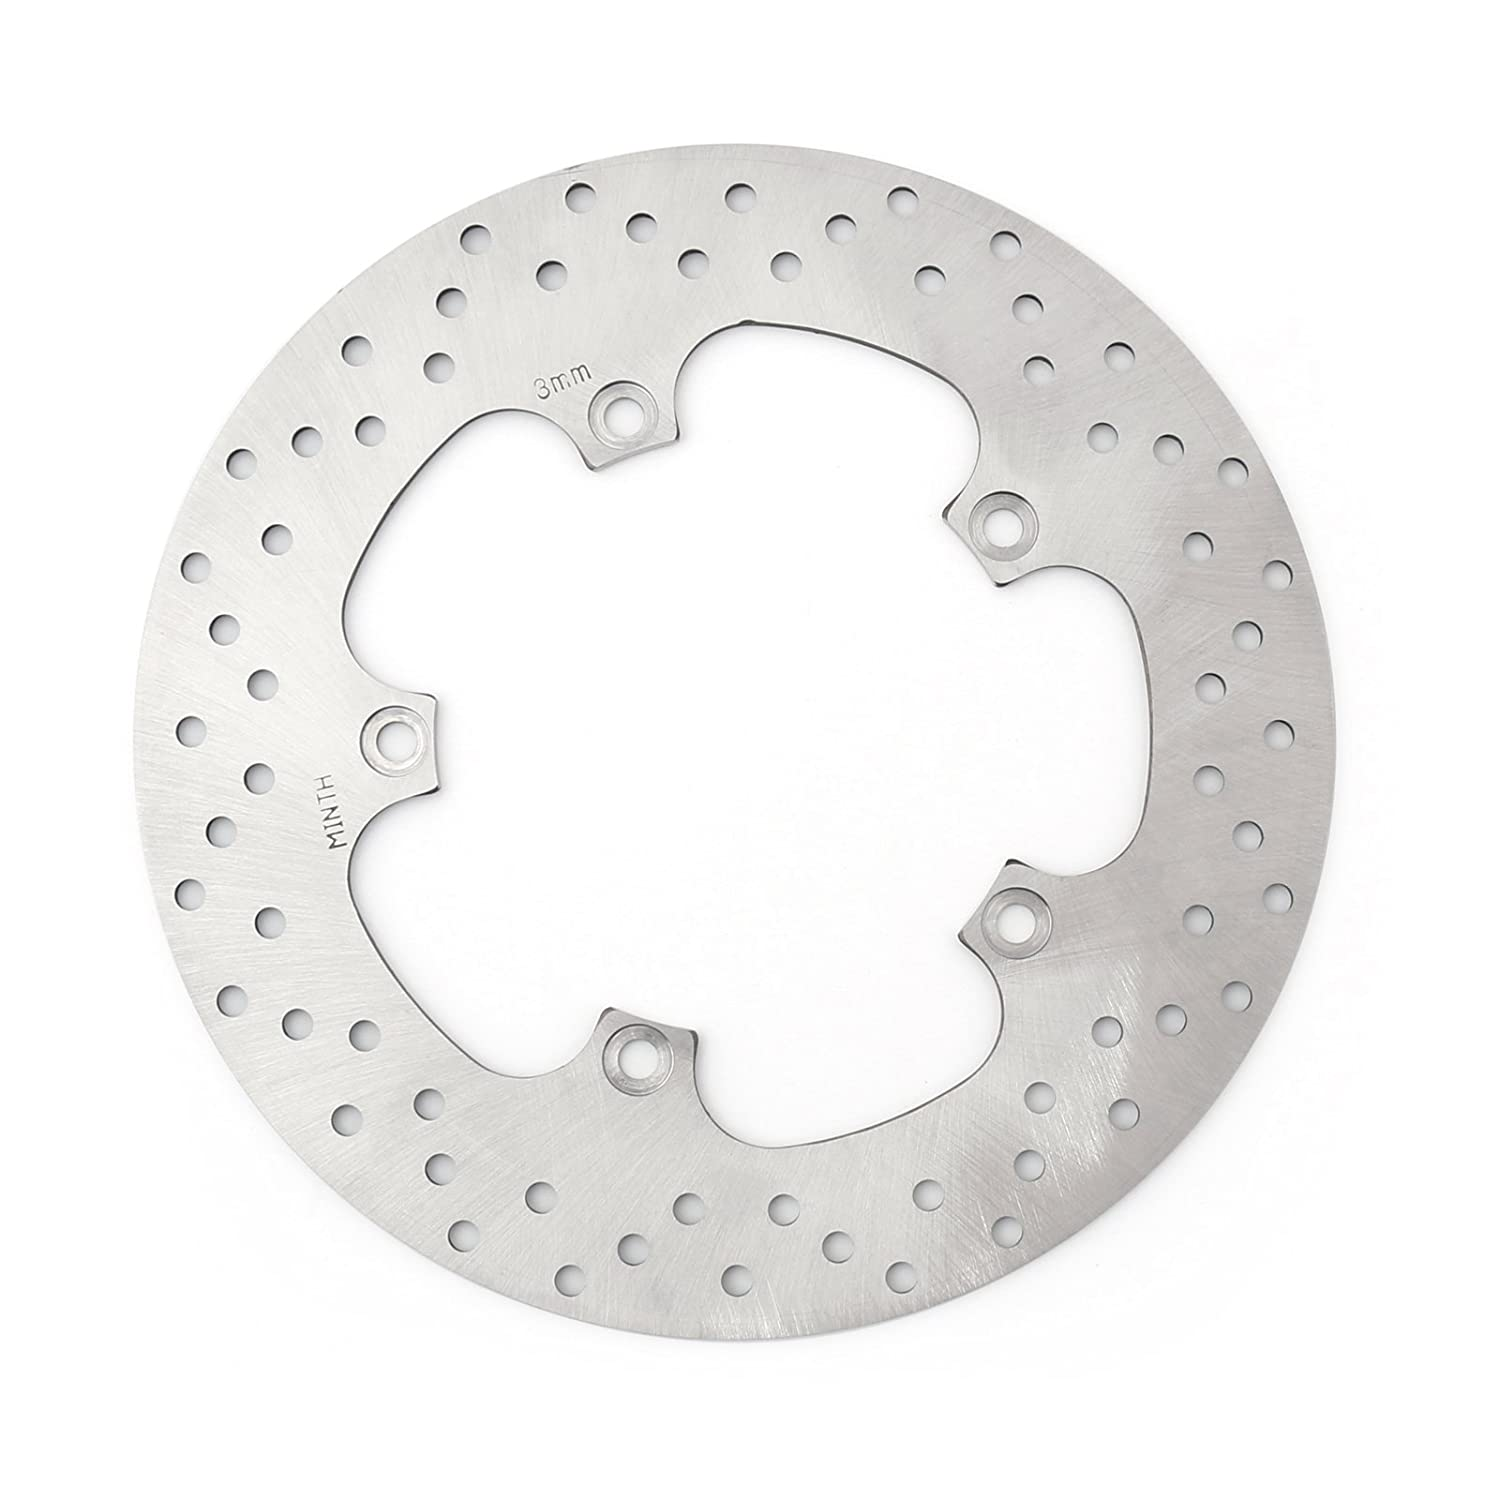 Areyourshop Front Brake Disc Rotor For Yamaha YP125 YP125R X-Max 06-09 YP400 Majesty 400